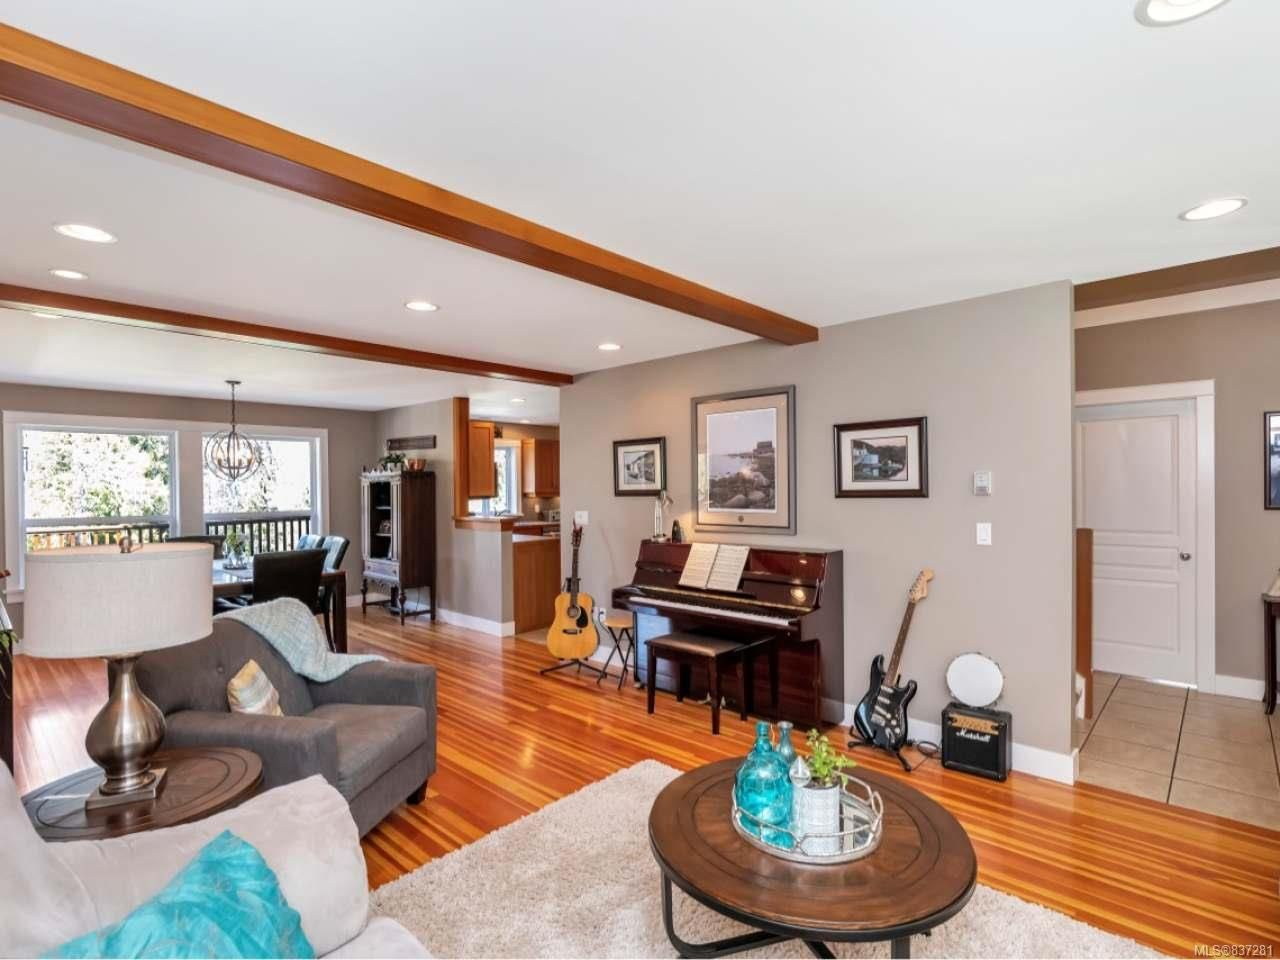 Photo 15: Photos: 925 Lilmac Rd in MILL BAY: ML Mill Bay House for sale (Malahat & Area)  : MLS®# 837281